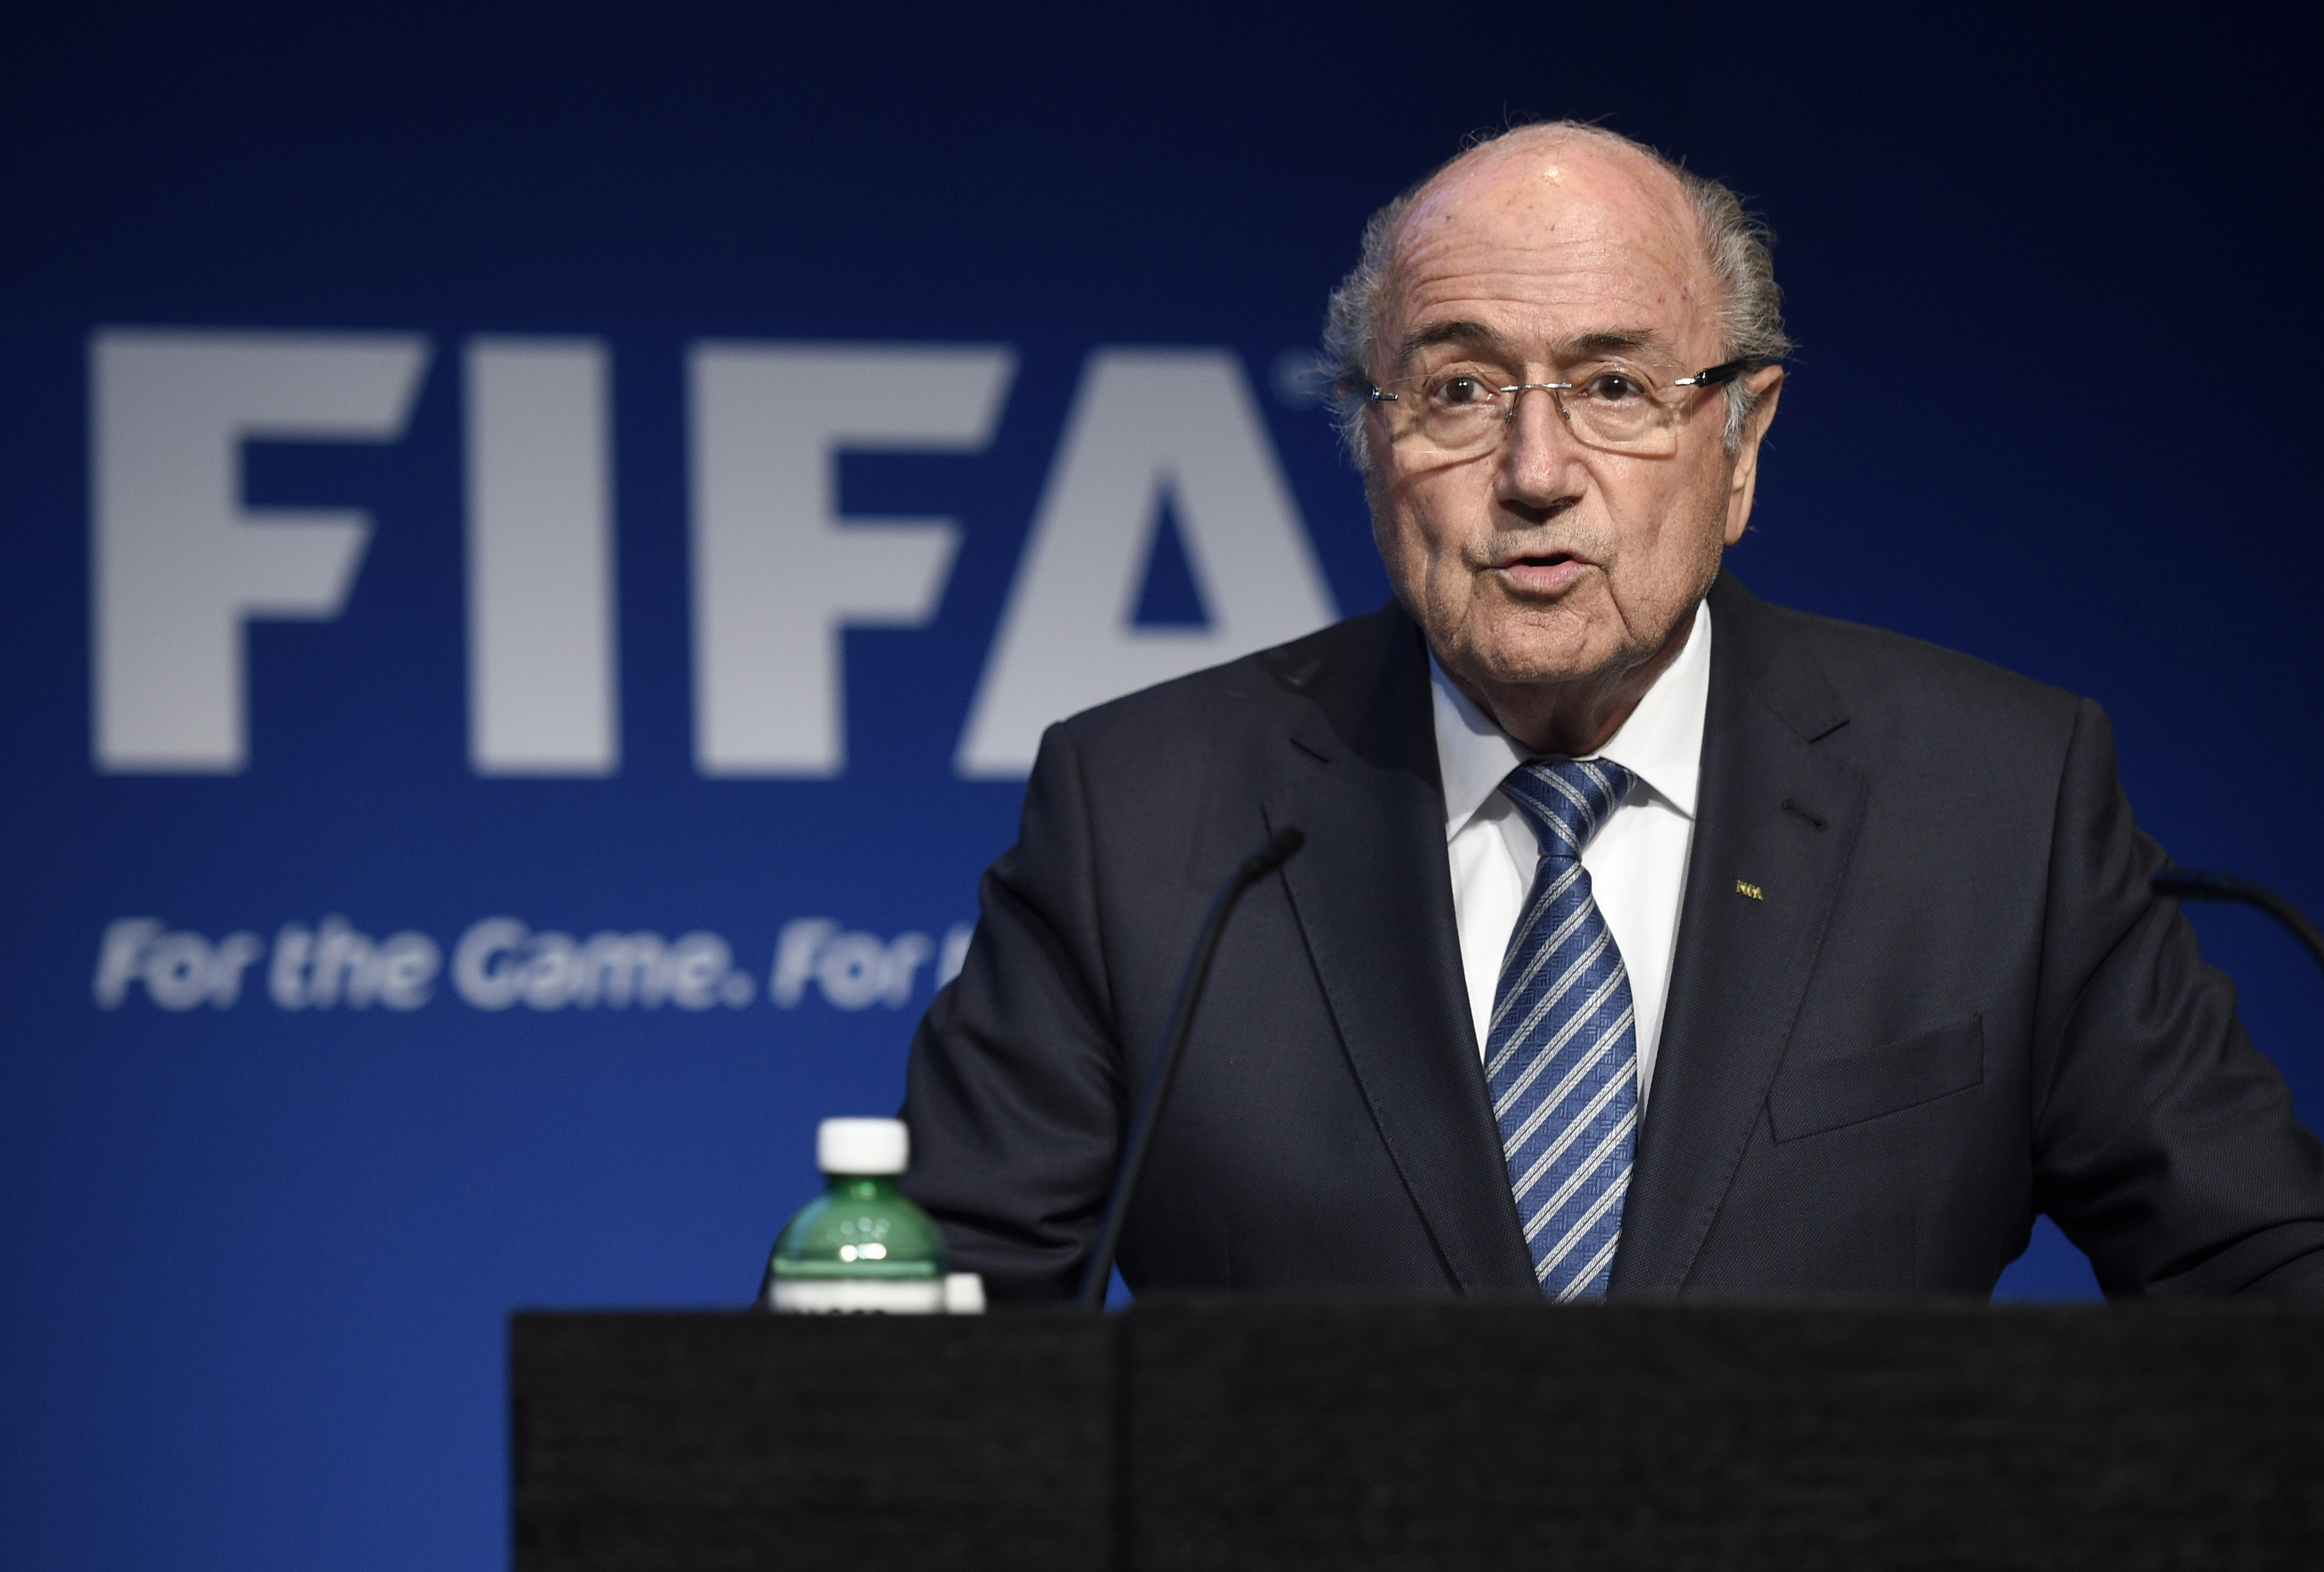 FIFA President Sepp Blatter speaks during a press conference at the FIFA headquarters in Zurich, June 2, 2015.